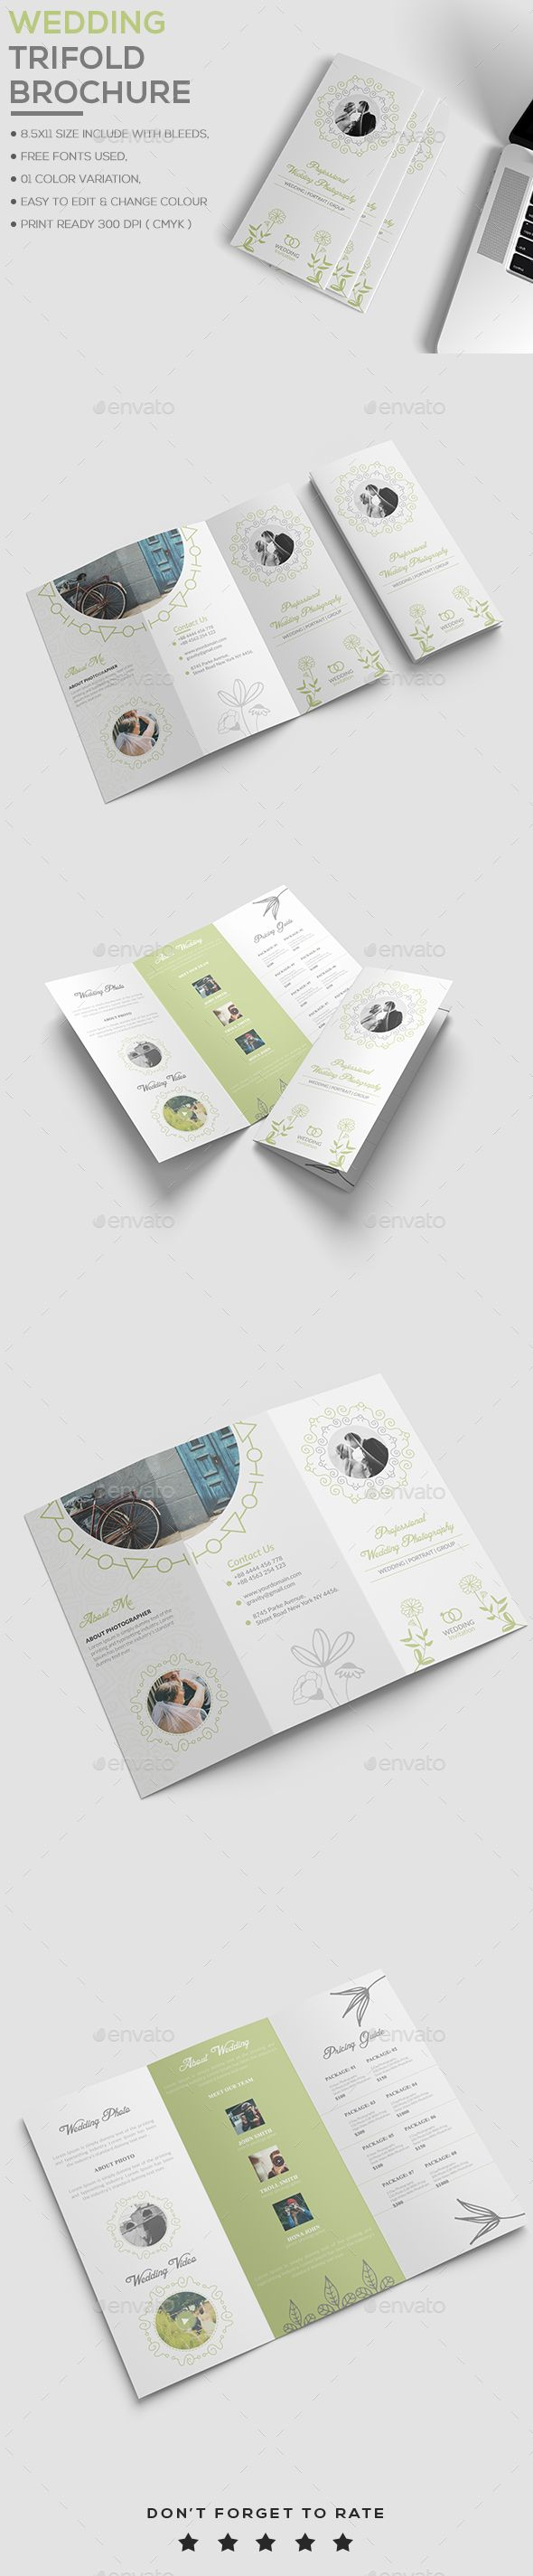 Wedding Brochure Template Brochure Template Brochures And Template